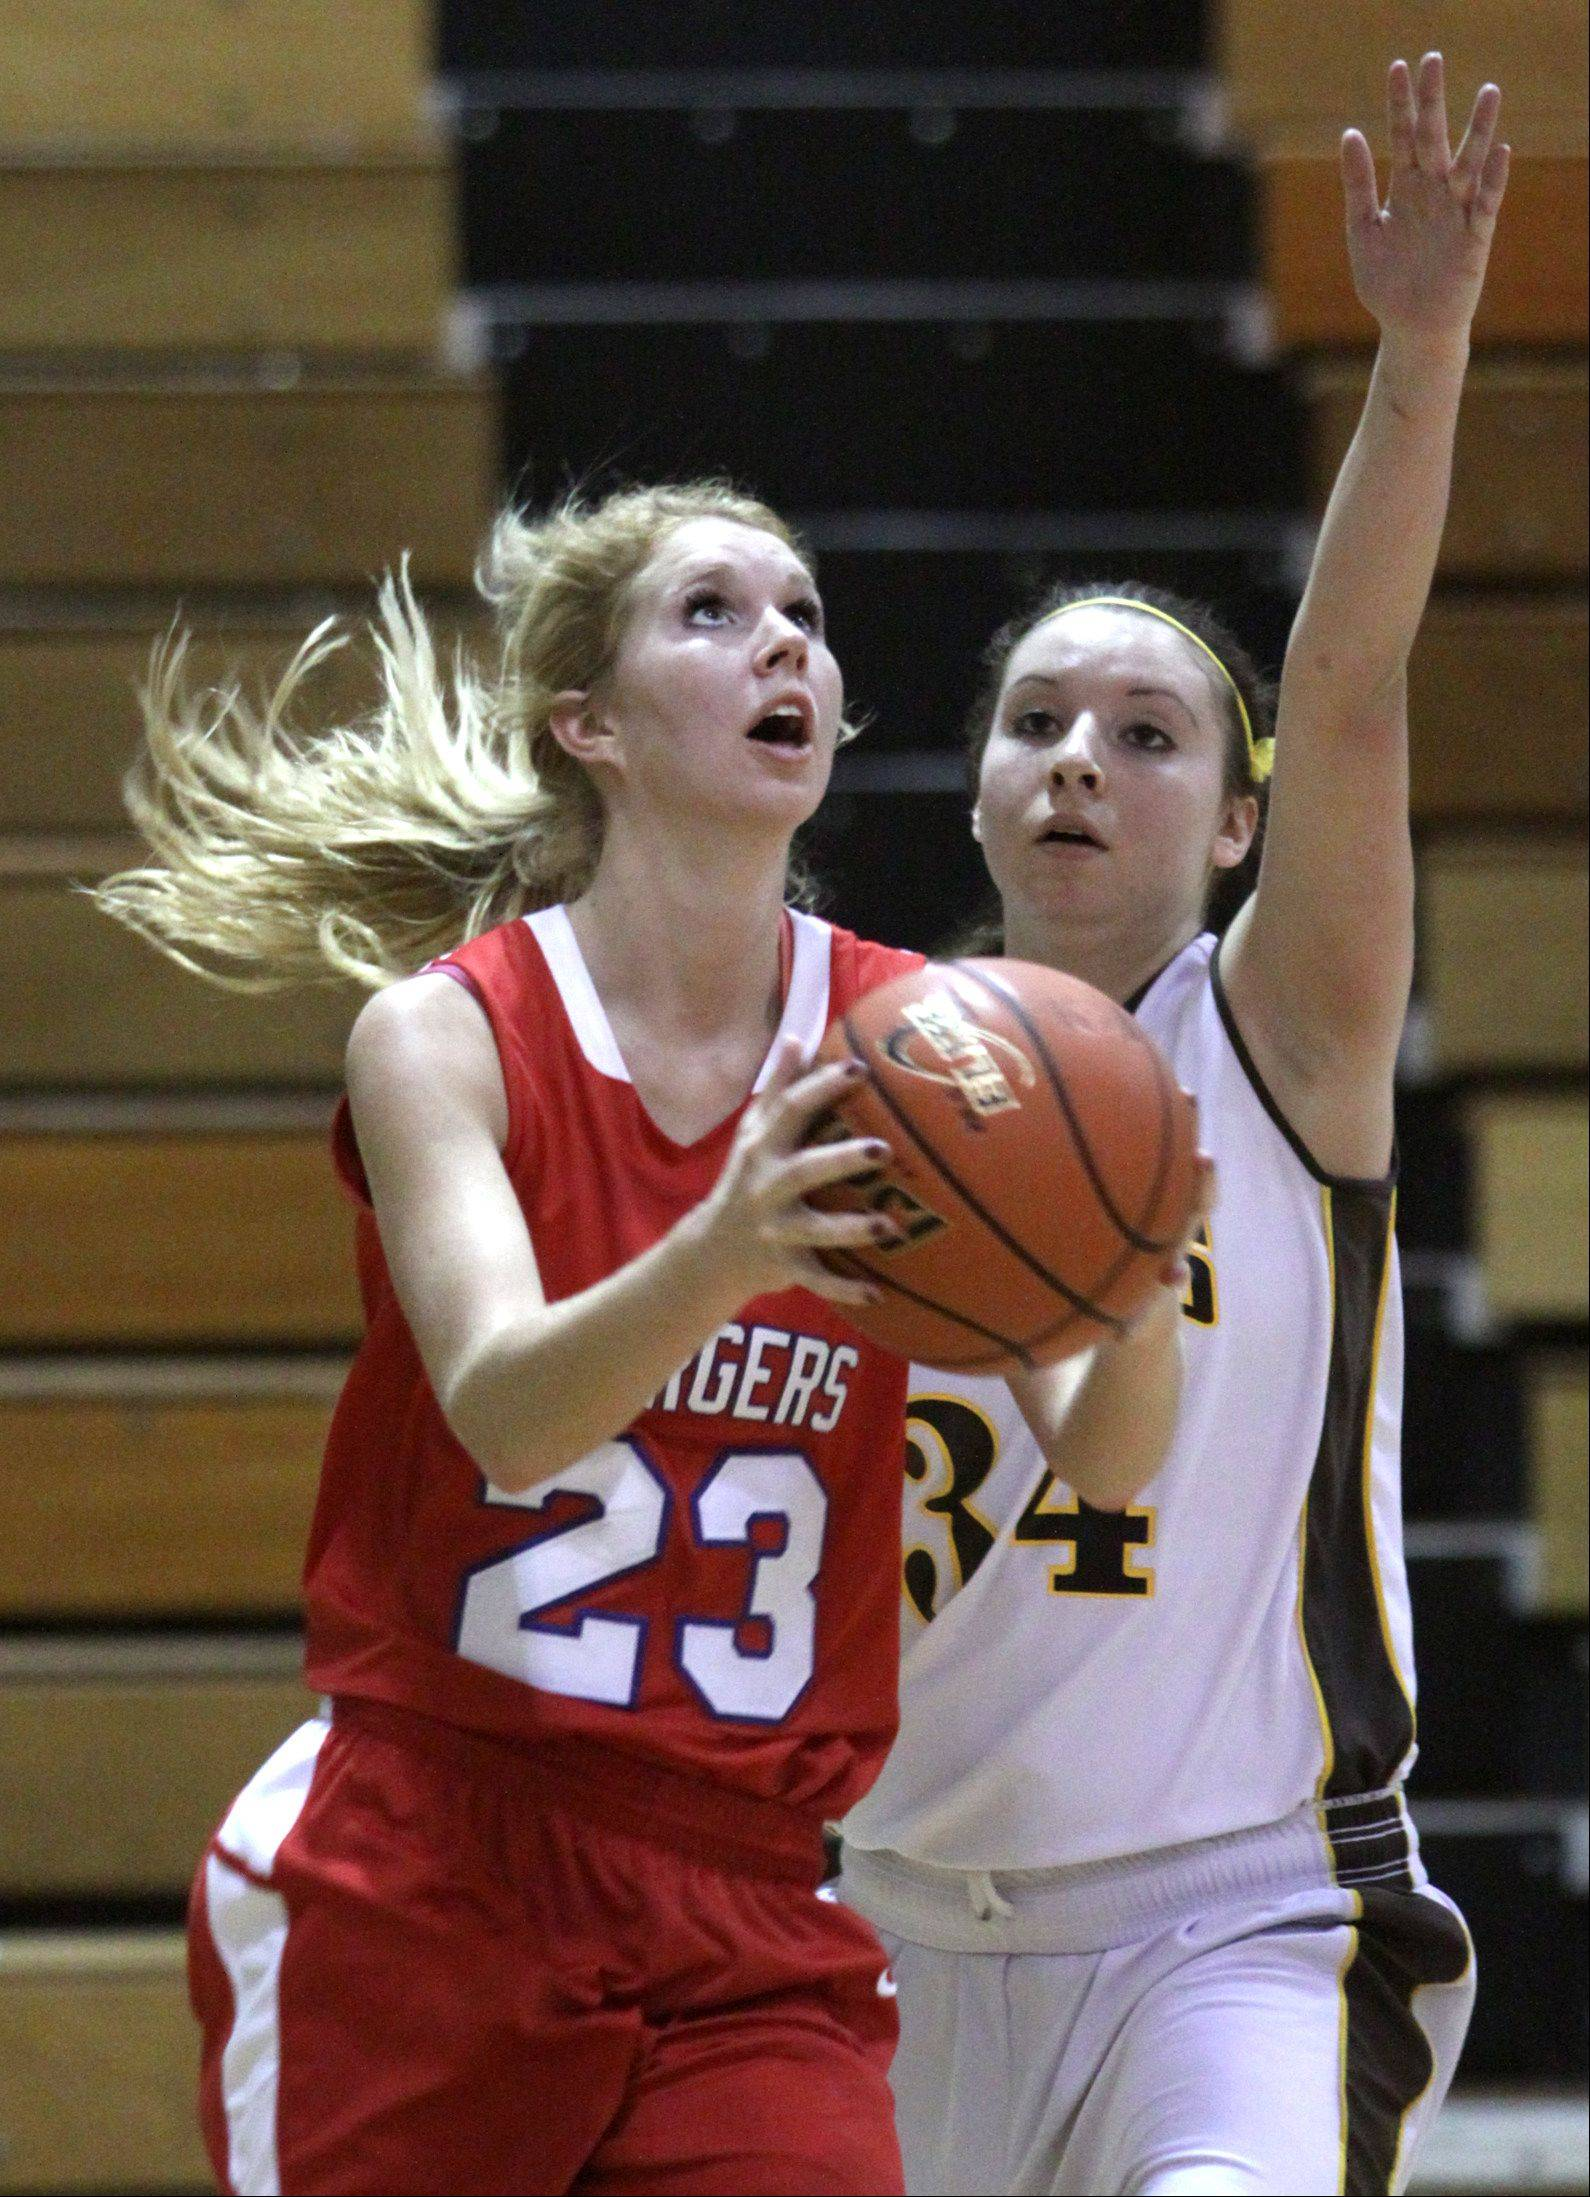 Dundee-Crown's Jillian Weichmann goes to the hoop past Jacobs' Jennifer Barnec during a regional game at Streamwood High School on Monday night. Dundee-Crown won 61-45.